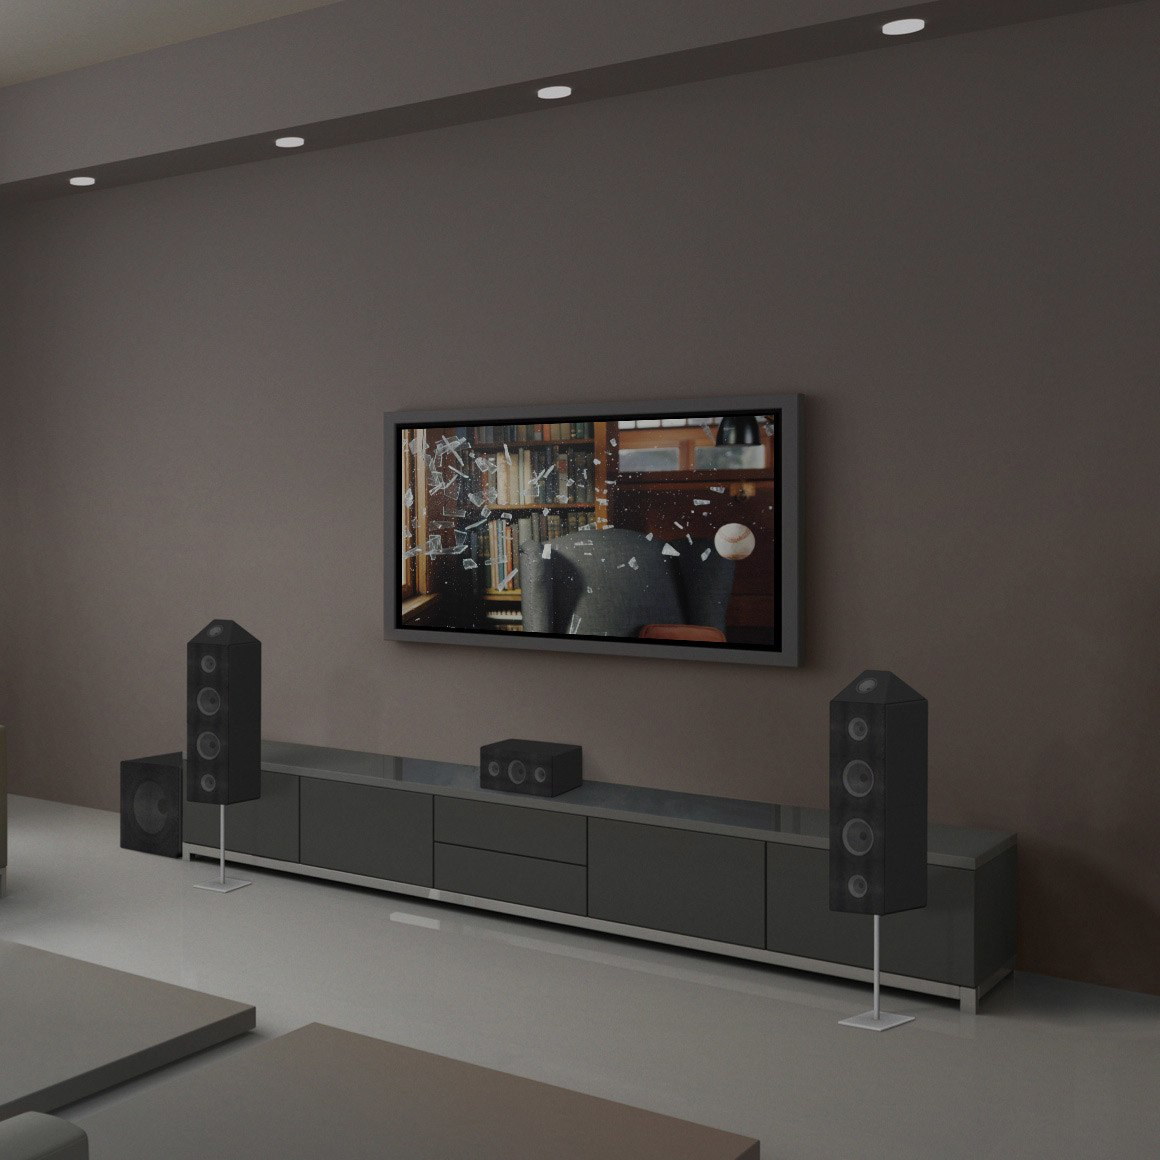 Home_Theater_3_Up_1160x1160